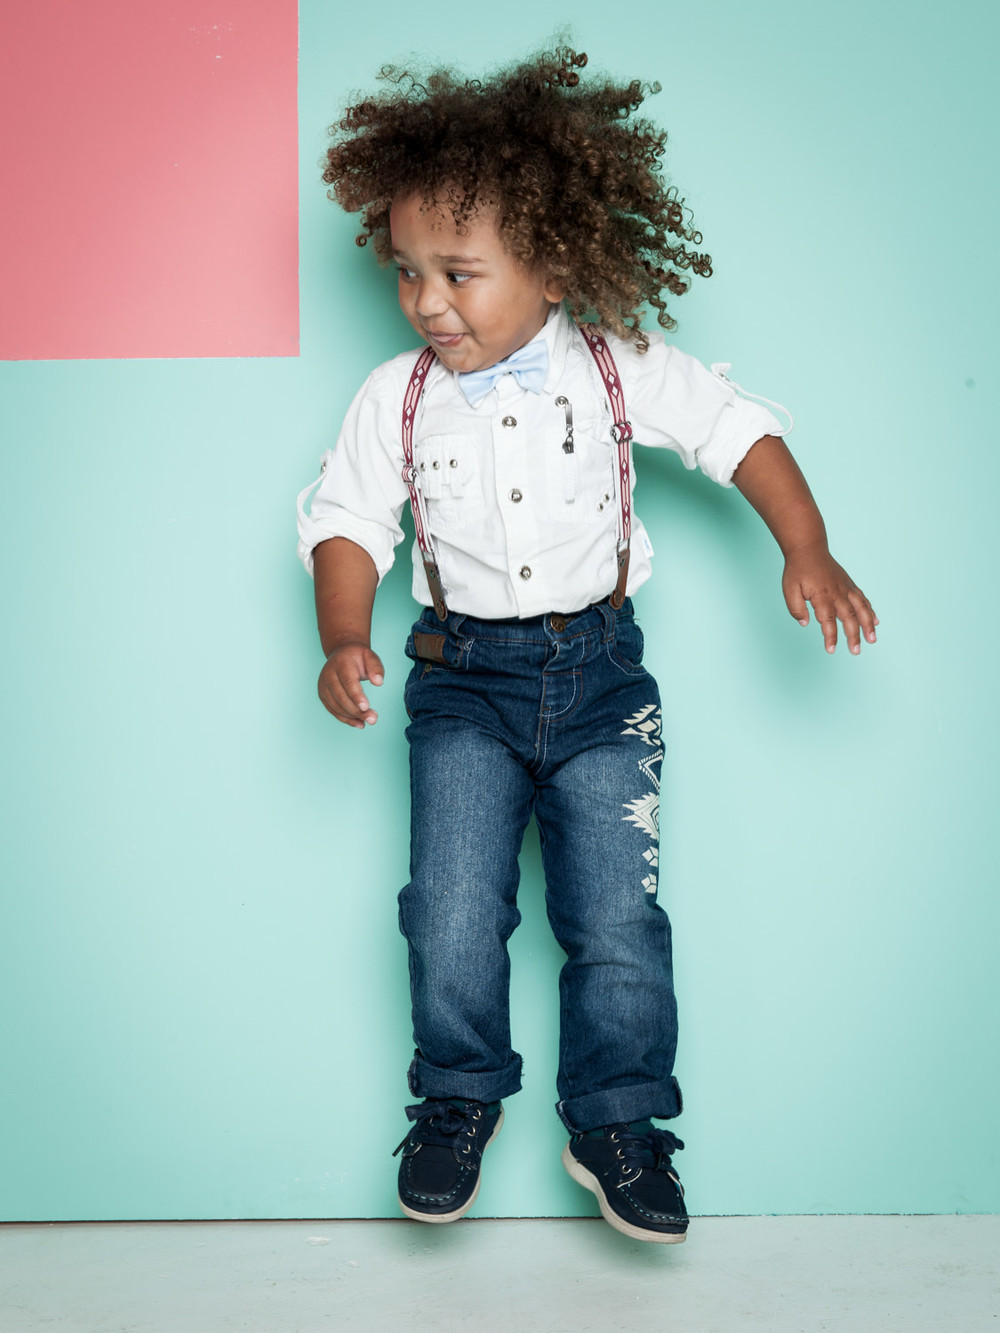 tim gerges capetown photographer kids fashion-2822.jpg